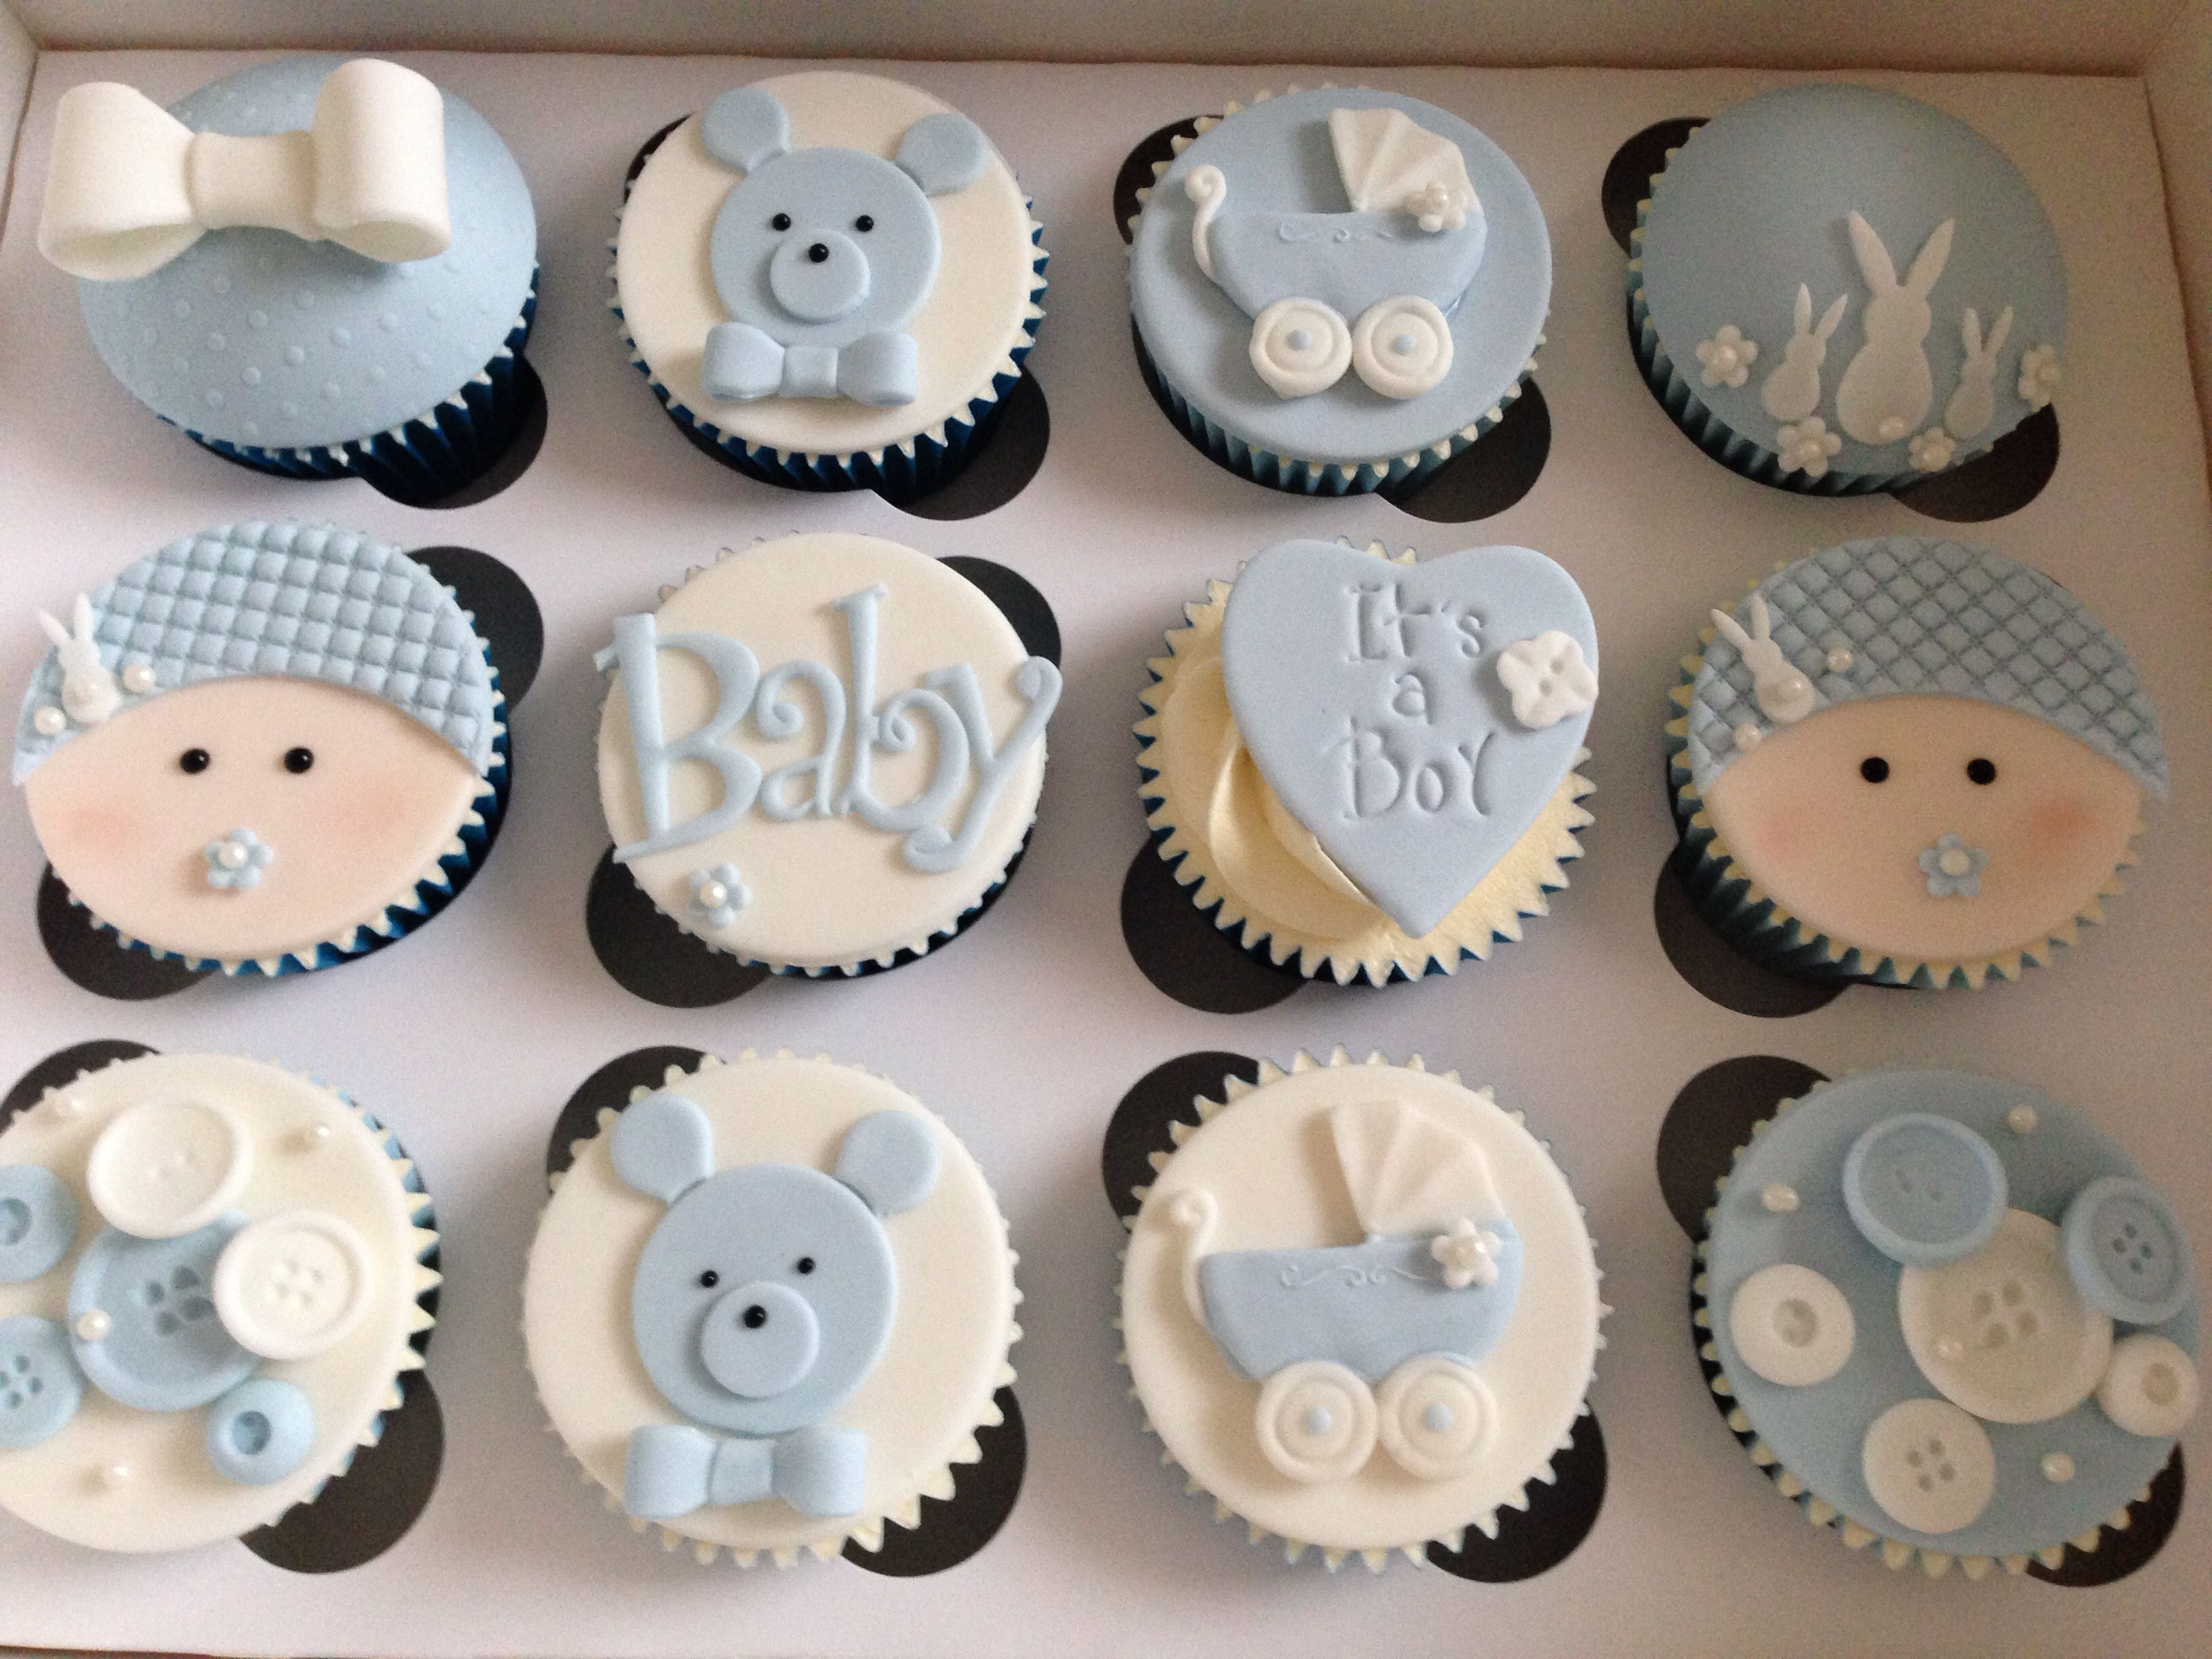 Best 20 Baby boy cupcakes ideas on Pinterest—no signup required